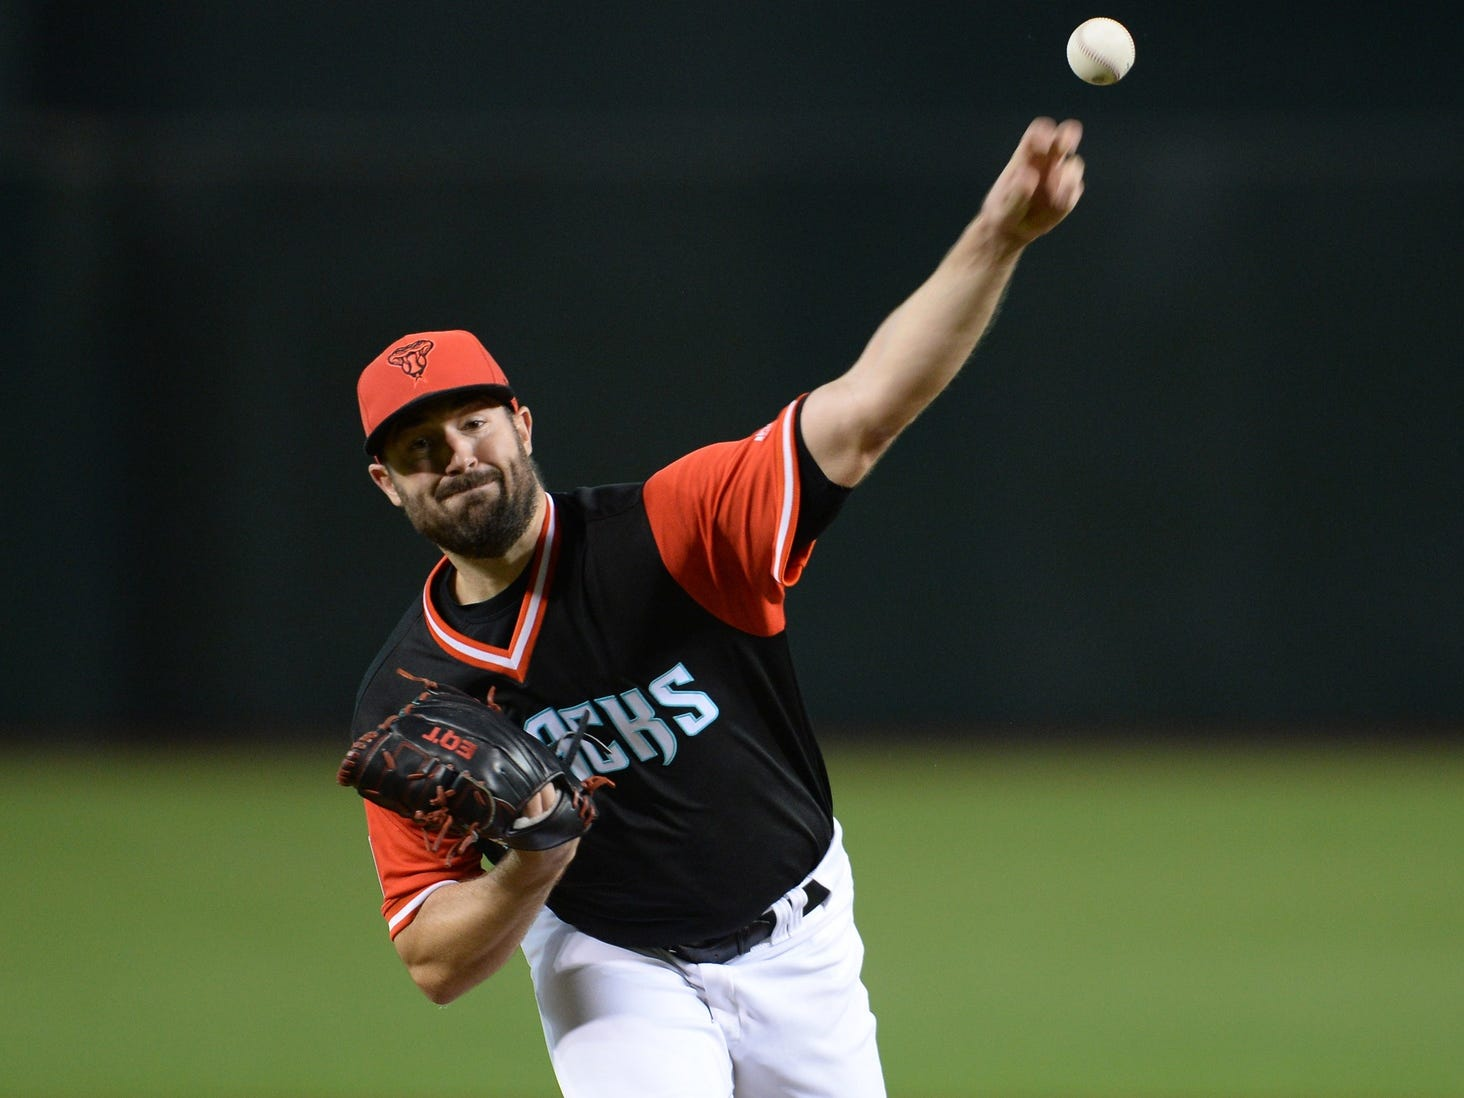 Robbie Ray throughs a pitch against the Seattle Mariners at Chase Field in Phoenix, Ariz., on Aug. 25, 2018.